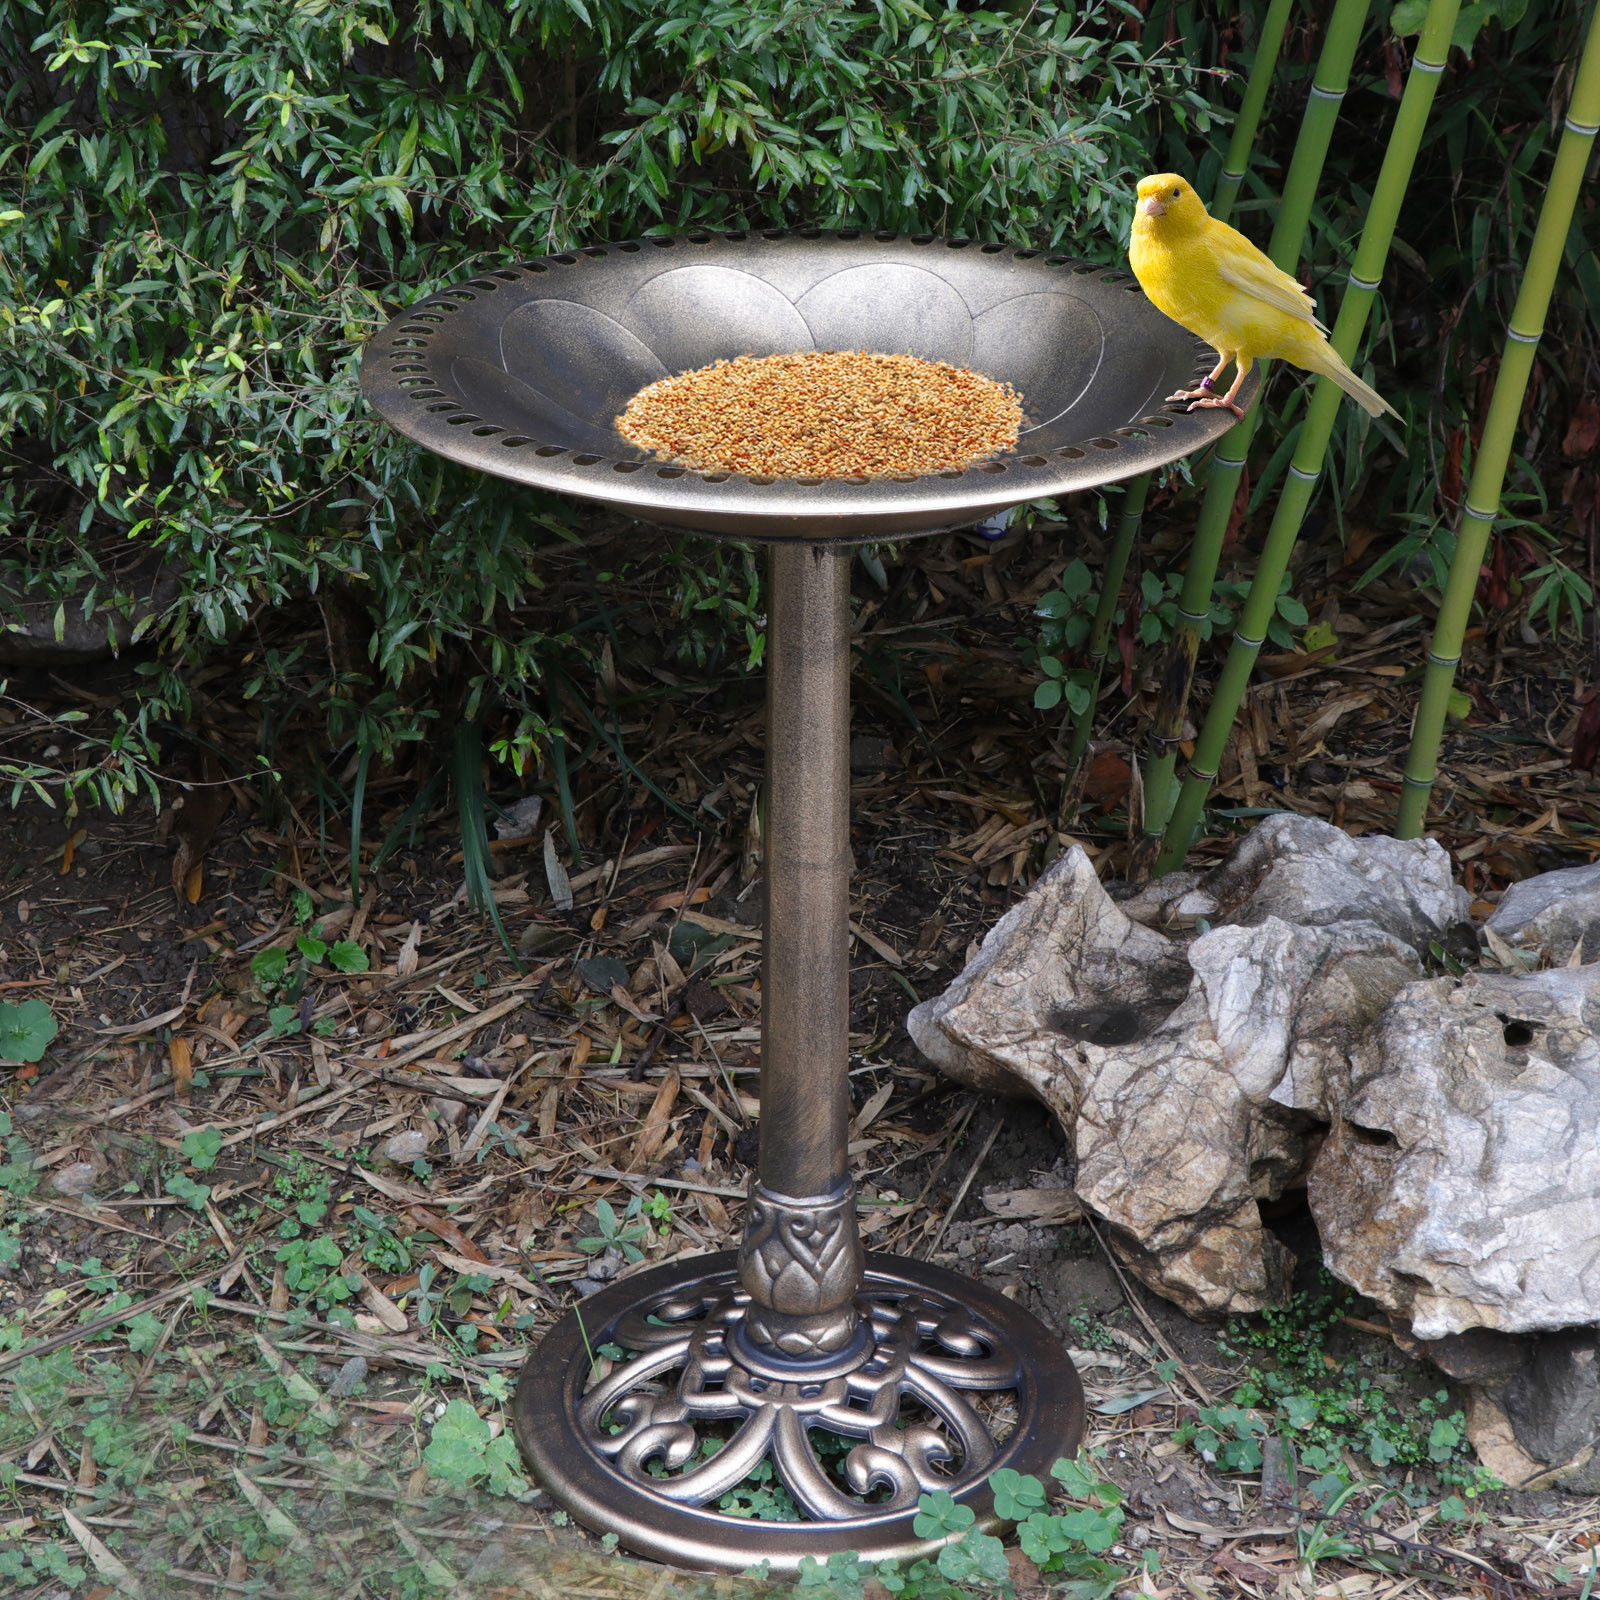 "Zeny Birdbath 28"" Height Pedestal Birdbath Outdoor Garden Decor Vintage Yard Art by"